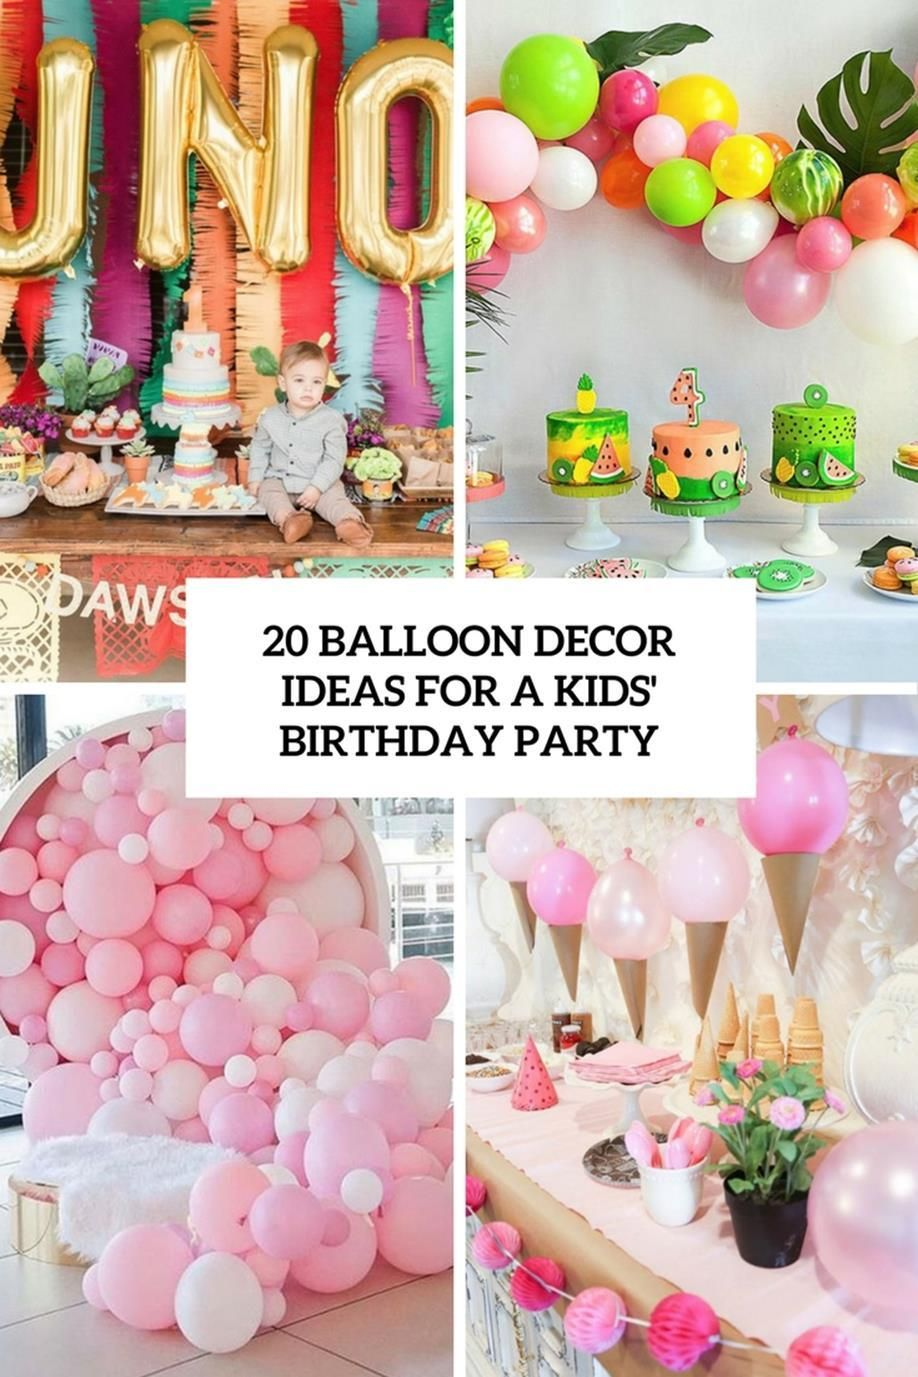 Kids Birthday Party Decoration Ideas At Home 7 Birthday Balloon